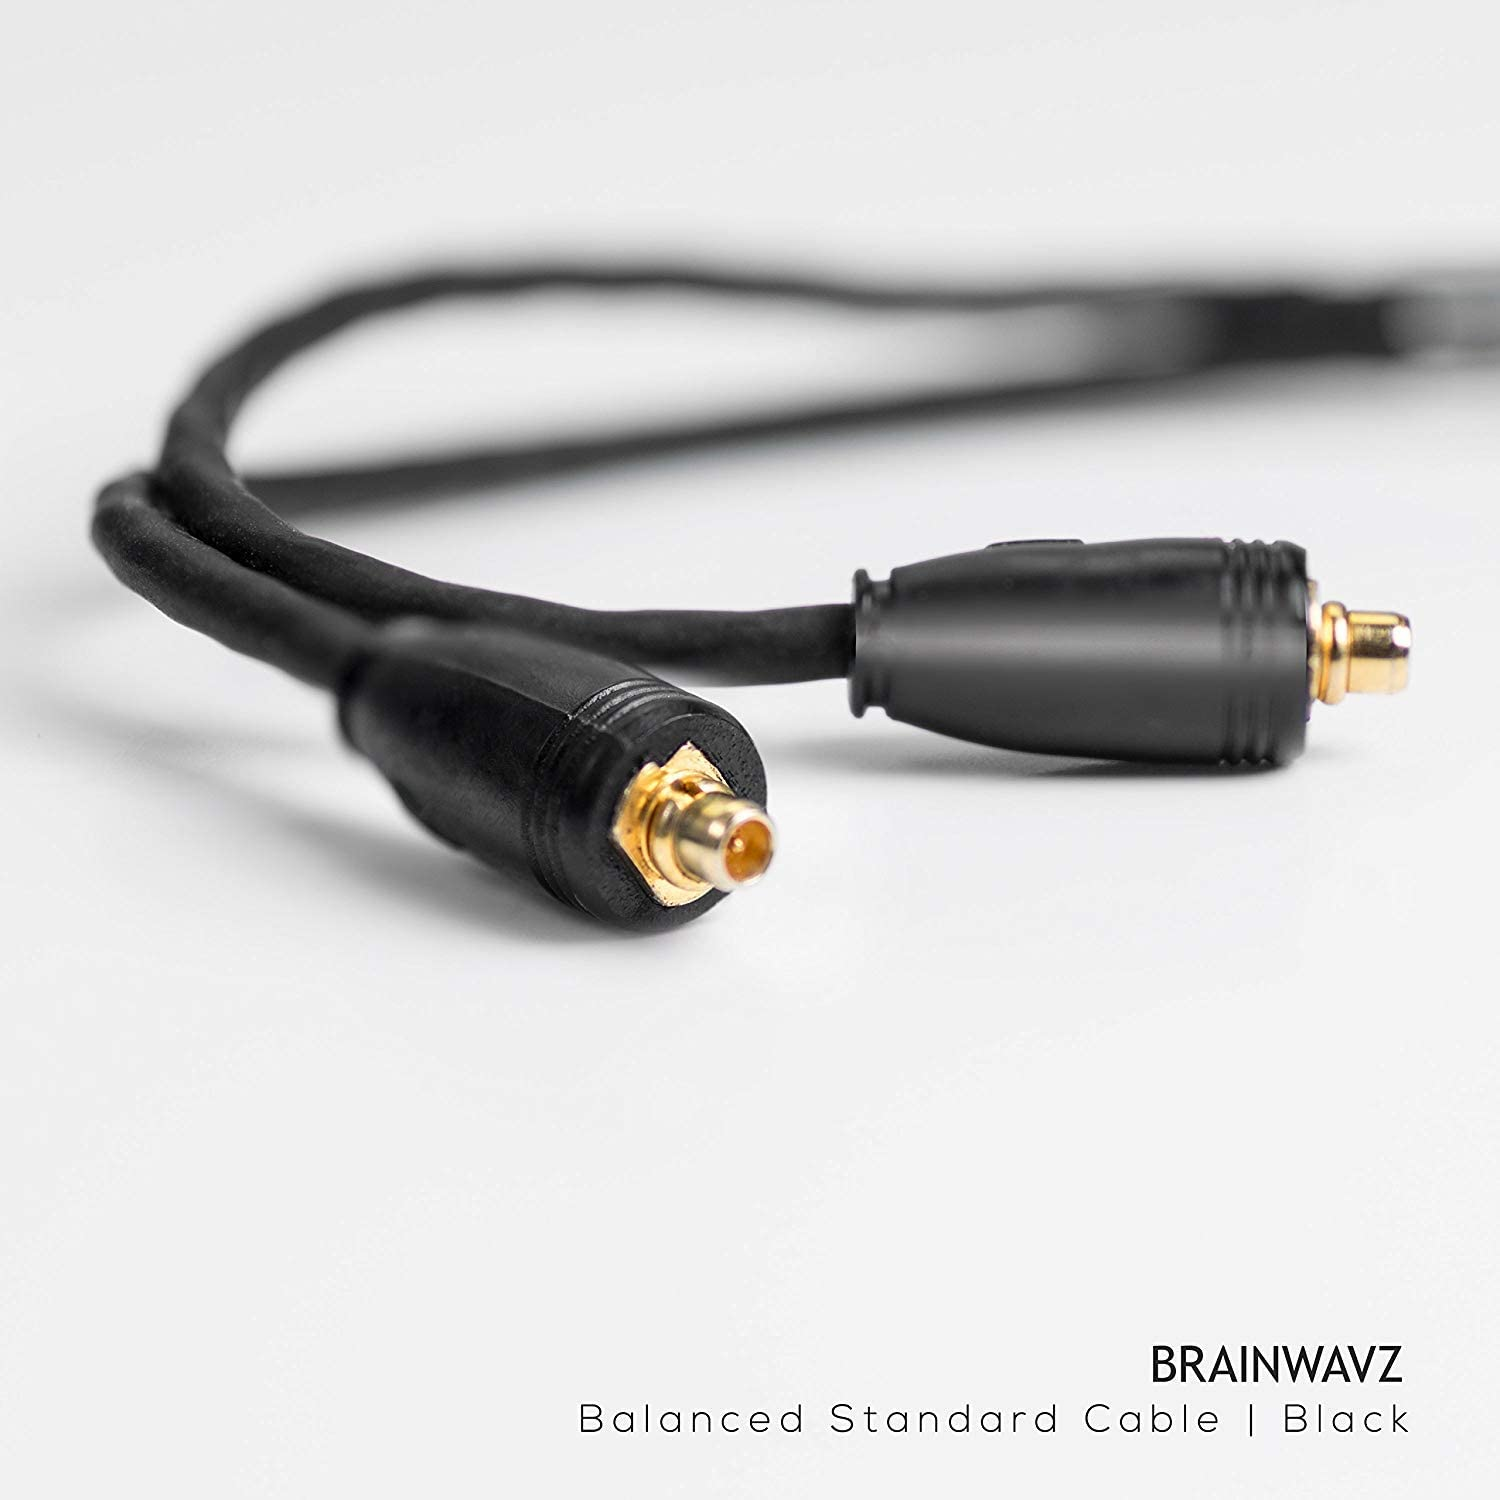 2.5MM Jack - Balanced Audio Cable Brainwavz 2.5MM Balanced Earphone Cable with MMCX Connectors